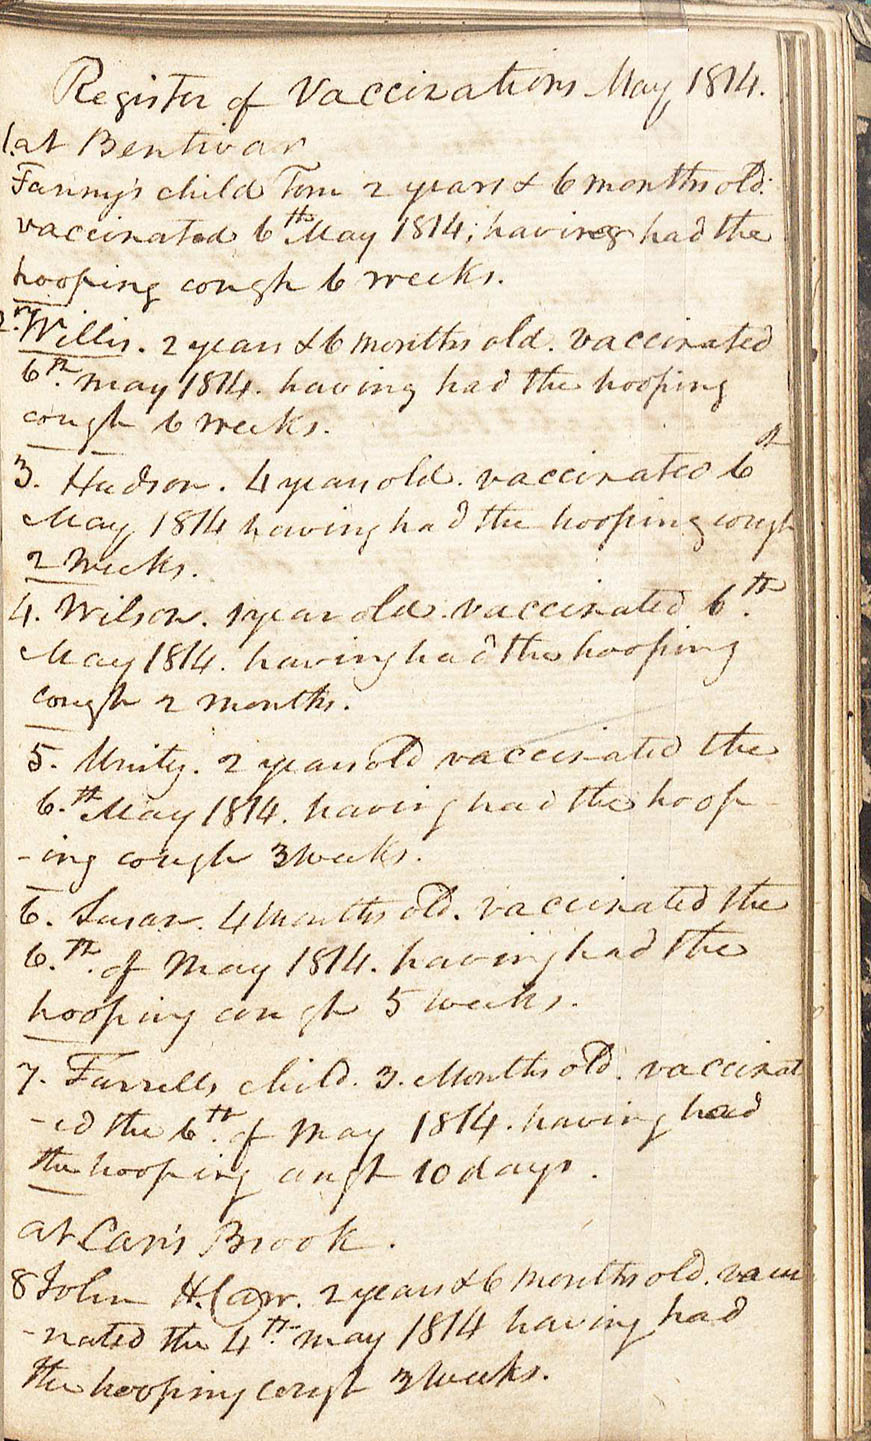 Frank Carr's Journal and Commonplace Book, 1810-1838 (MSS 15444)  C. Venable Minor Endowment Fund, 2012/2013. This is the personal journal of Frank Carr, which includes a register of vaccinations during May, 1814 and an extensive description of a man's case of hydrophobia.